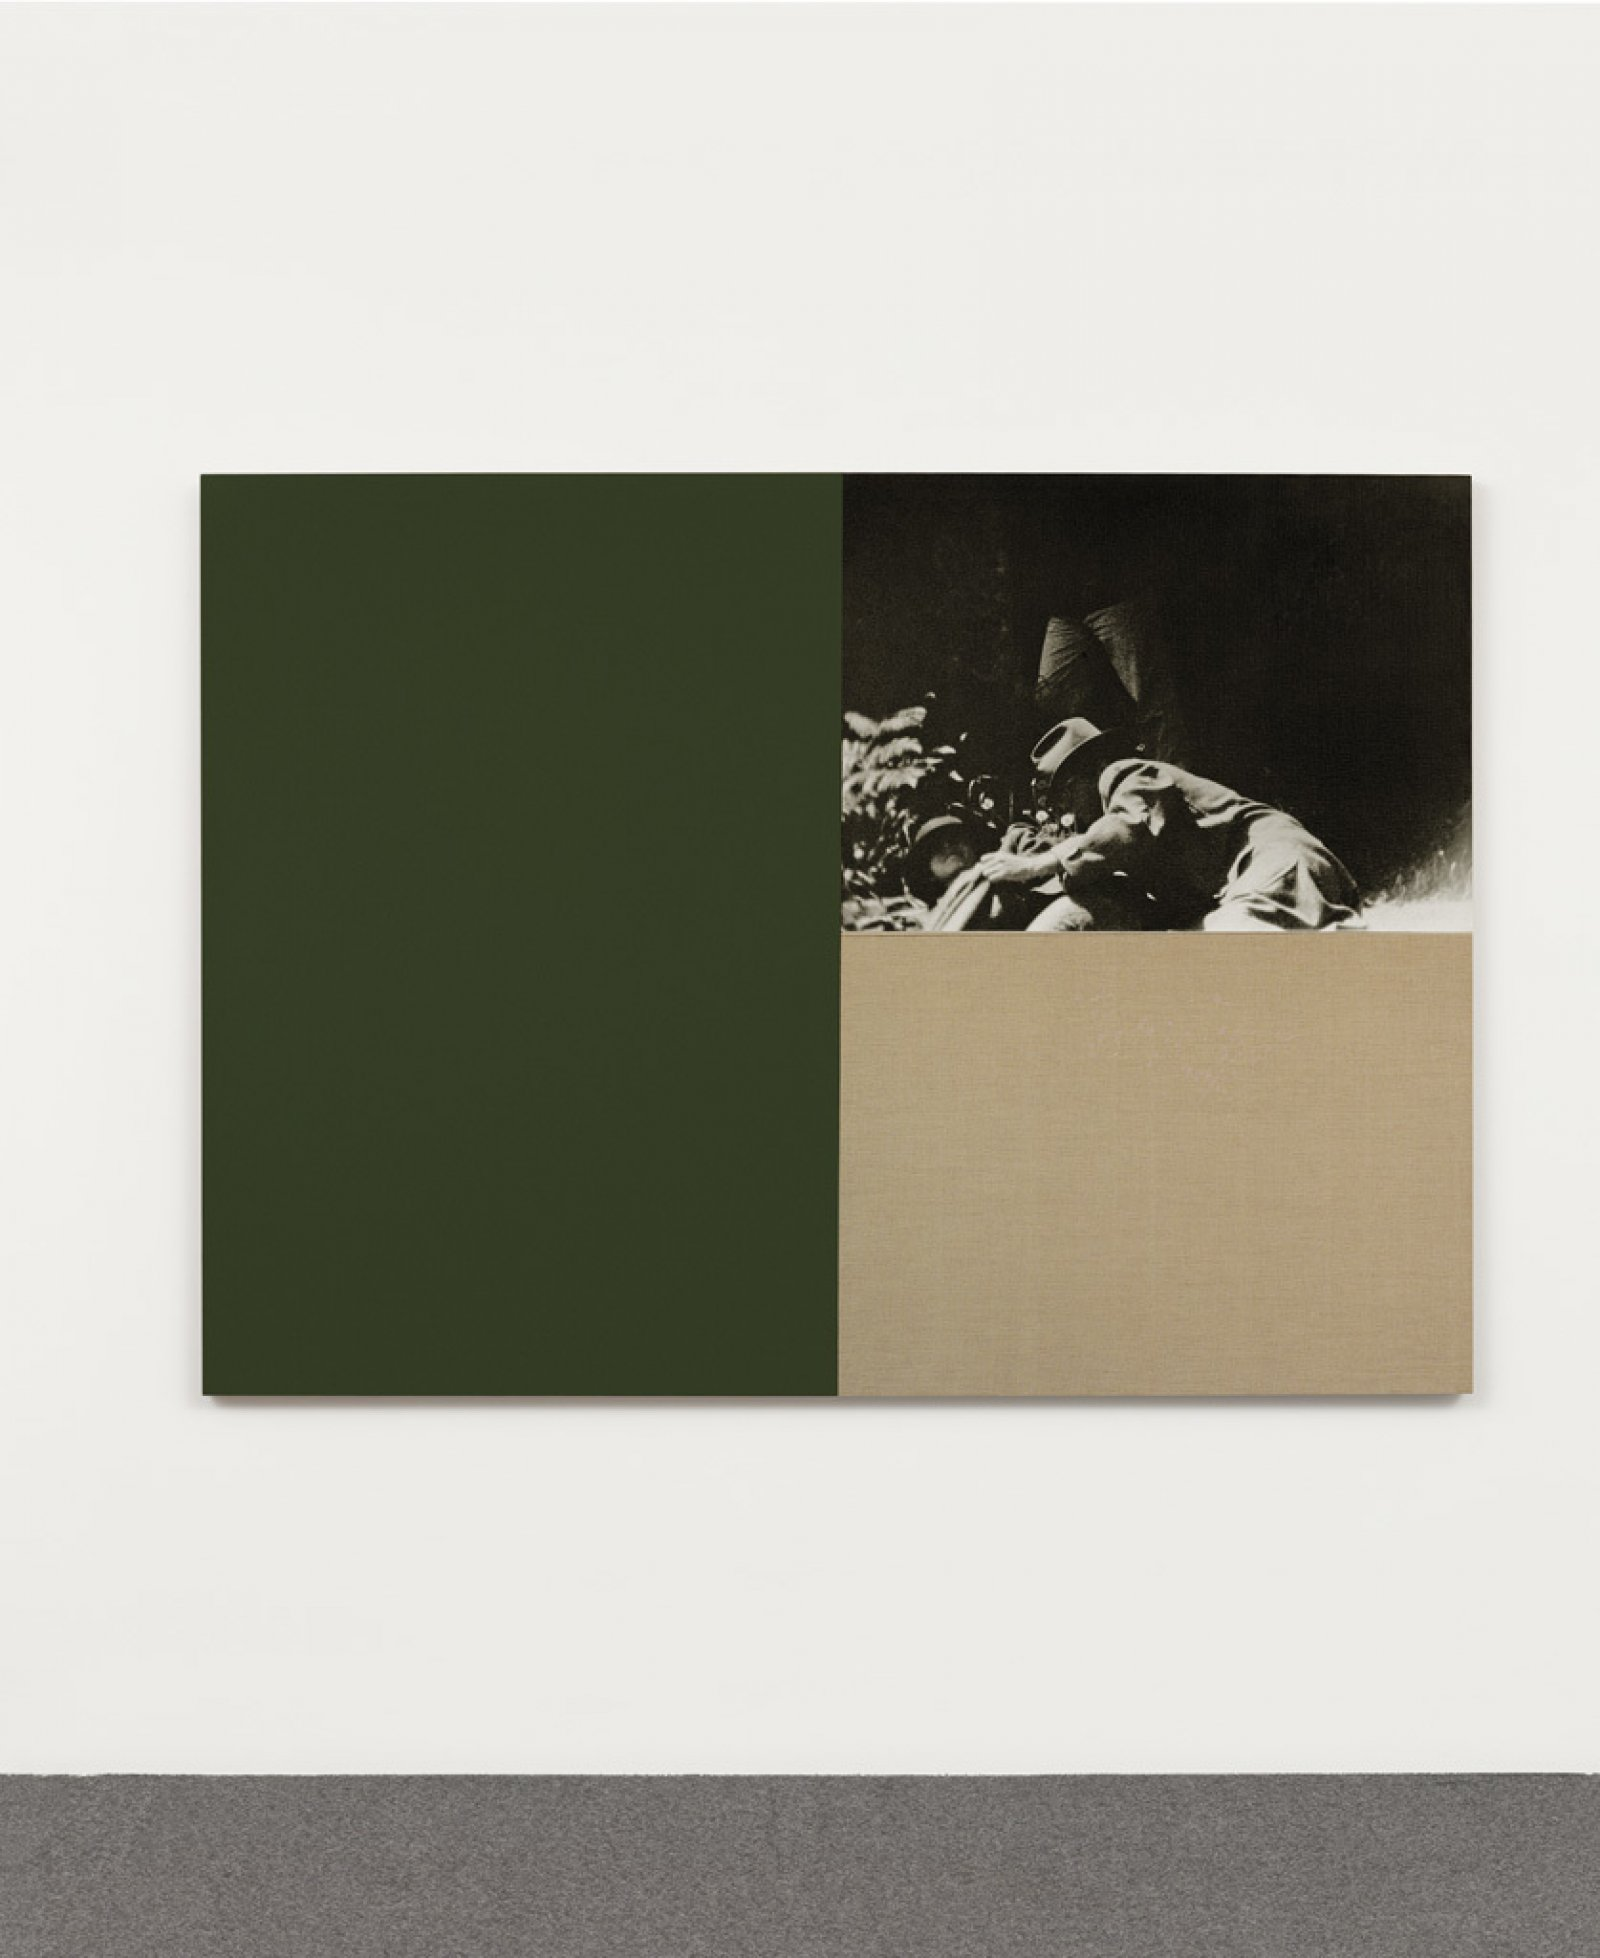 Ian Wallace,Poverty Image with Hookers Green, 1987, photolaminate and acrylic on linen, 47 x 68 in. (119 x 171 cm)